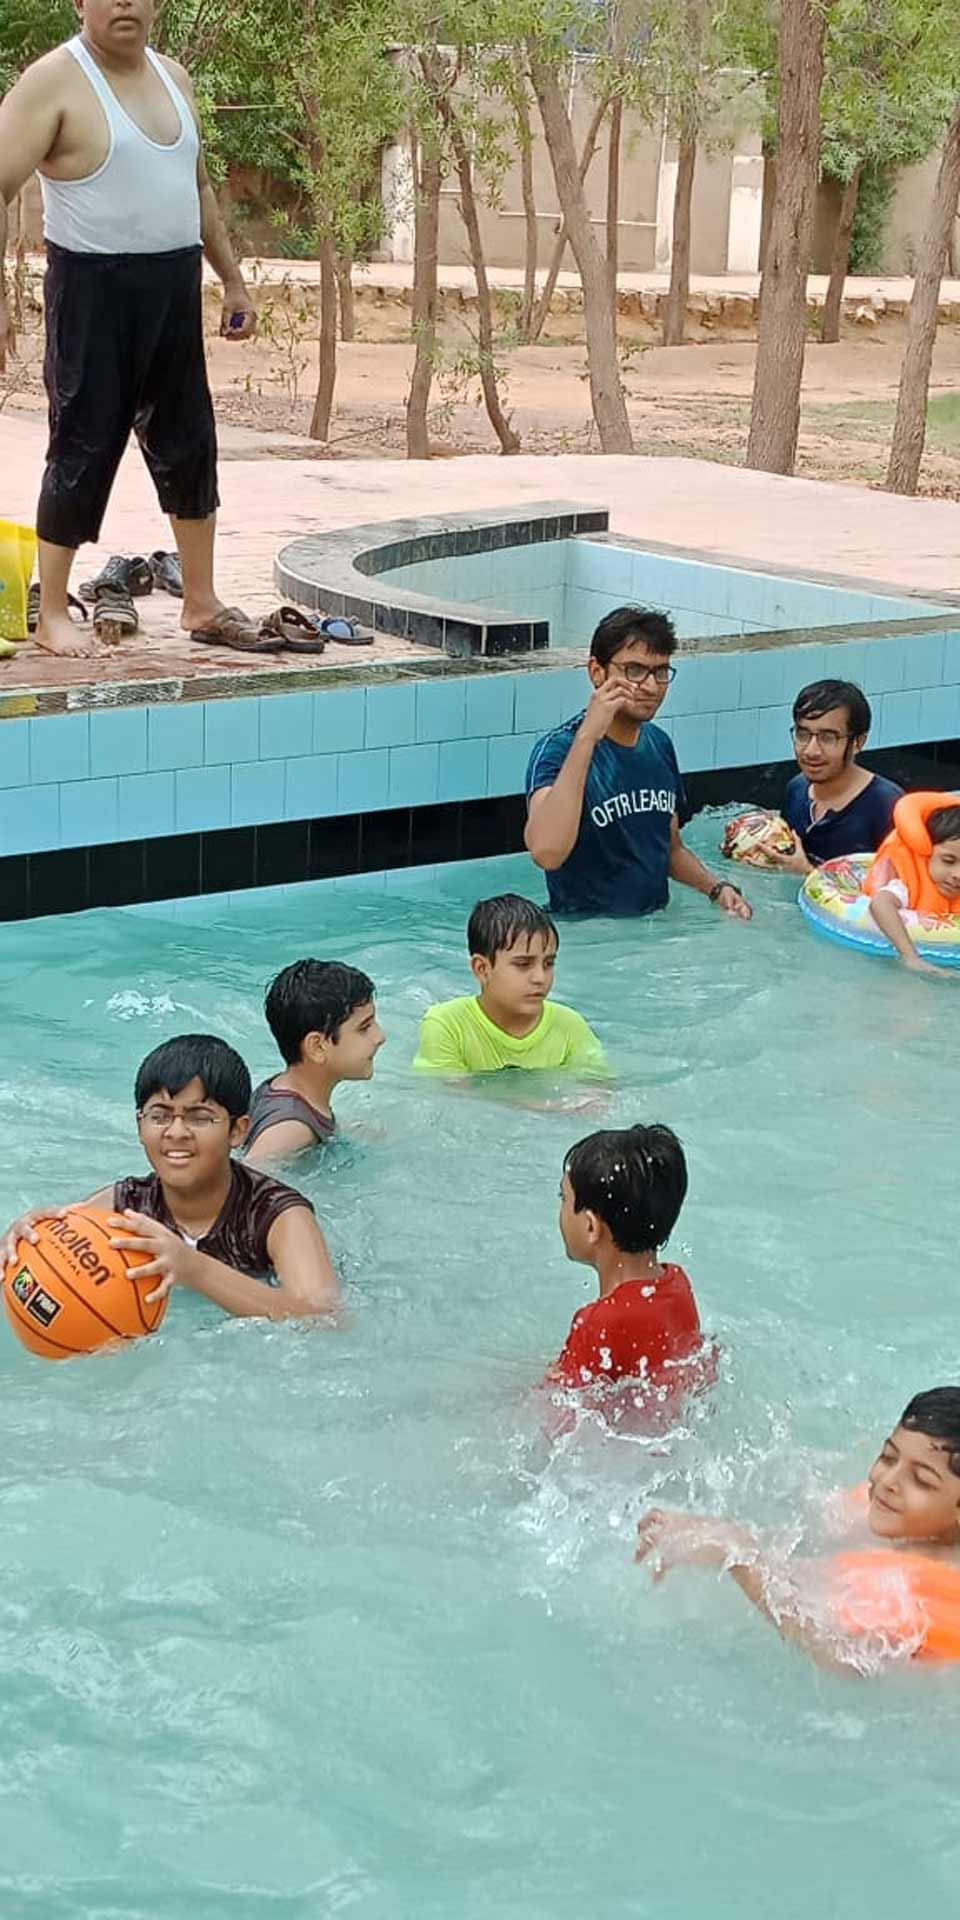 Dr. Ata Ur Rehman, Dr. Faraz Salim, Habib Ur Rehman are playing inside the swimming pool